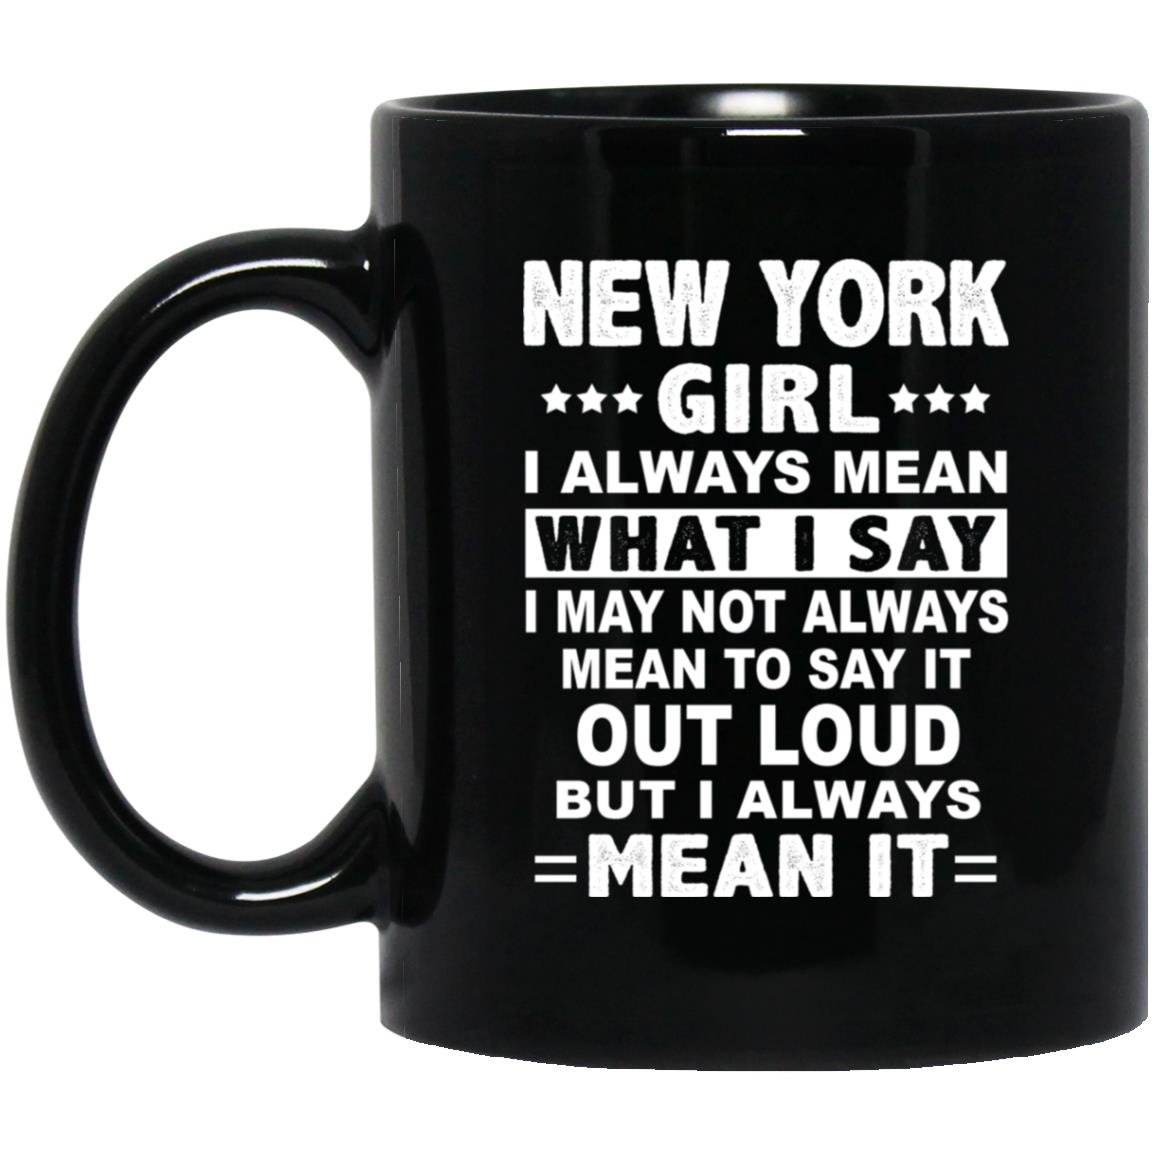 New York Girl I Always Mean What I Say Mug